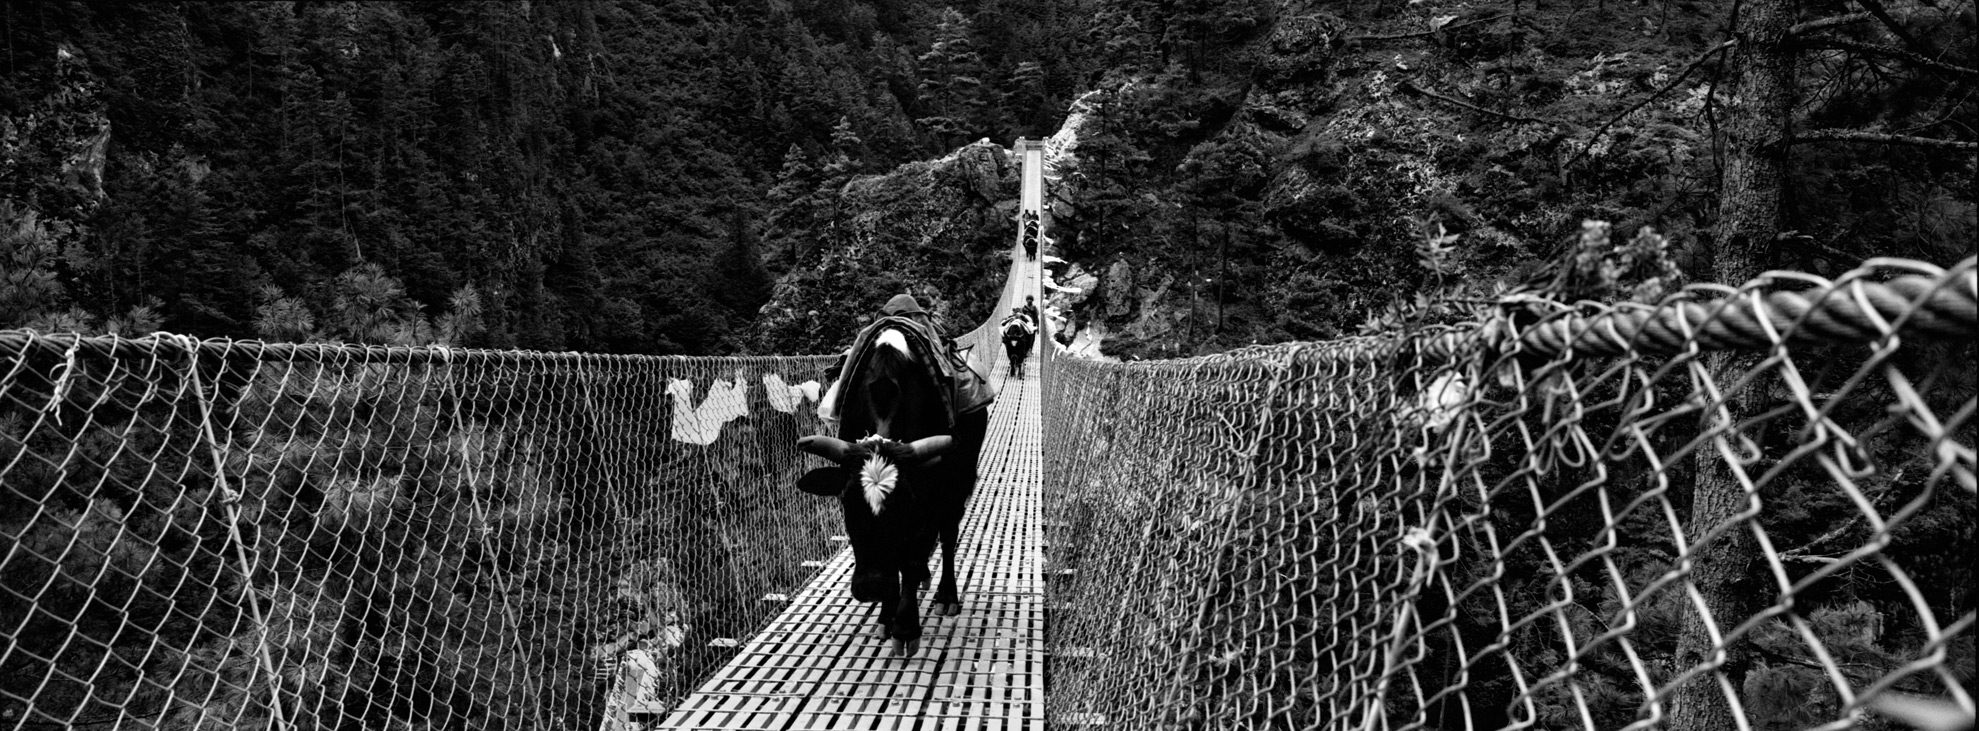 Hillary Bridge over the Dudh River on the way to Namche Bazar, f = 11, exp = 1 / 125s